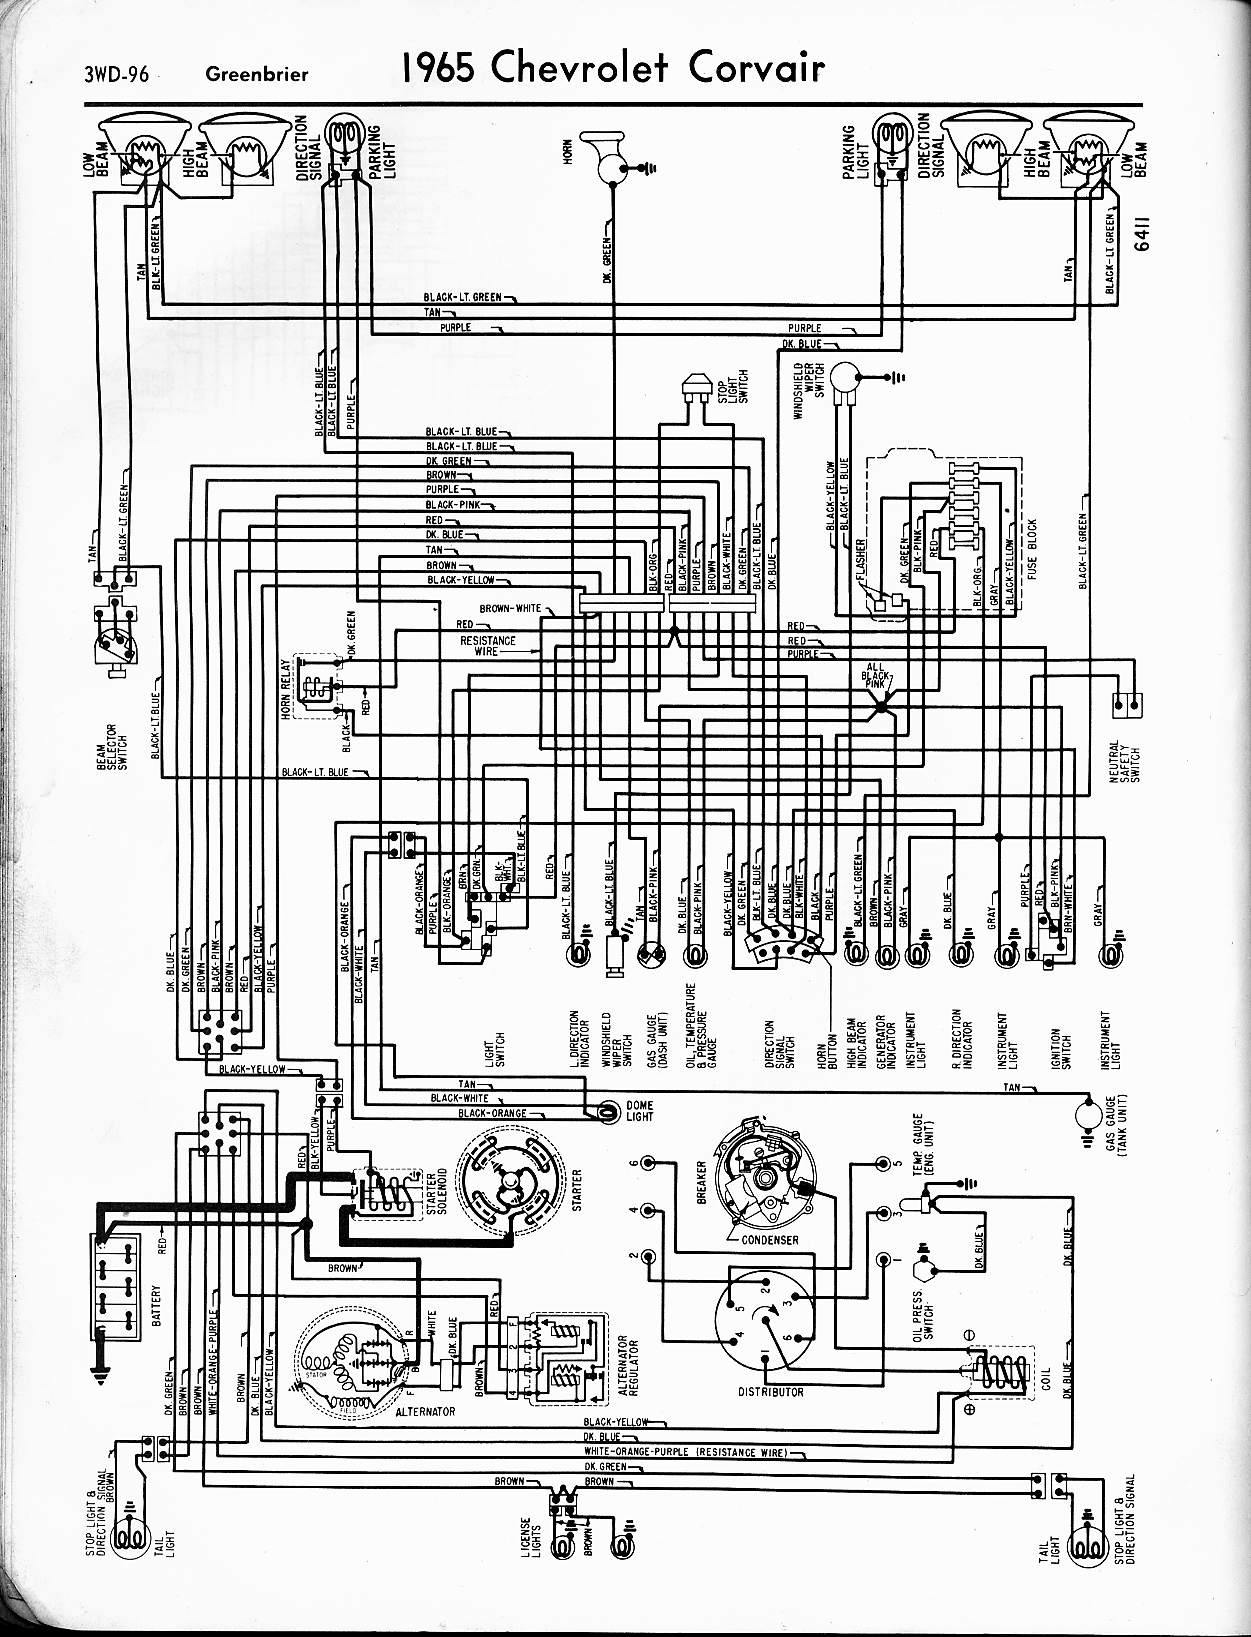 57 65 Chevy Wiring Diagrams 1999 Jeep Grand Cherokee Turn Signal Diagram 1965 Corvair Greenbrier